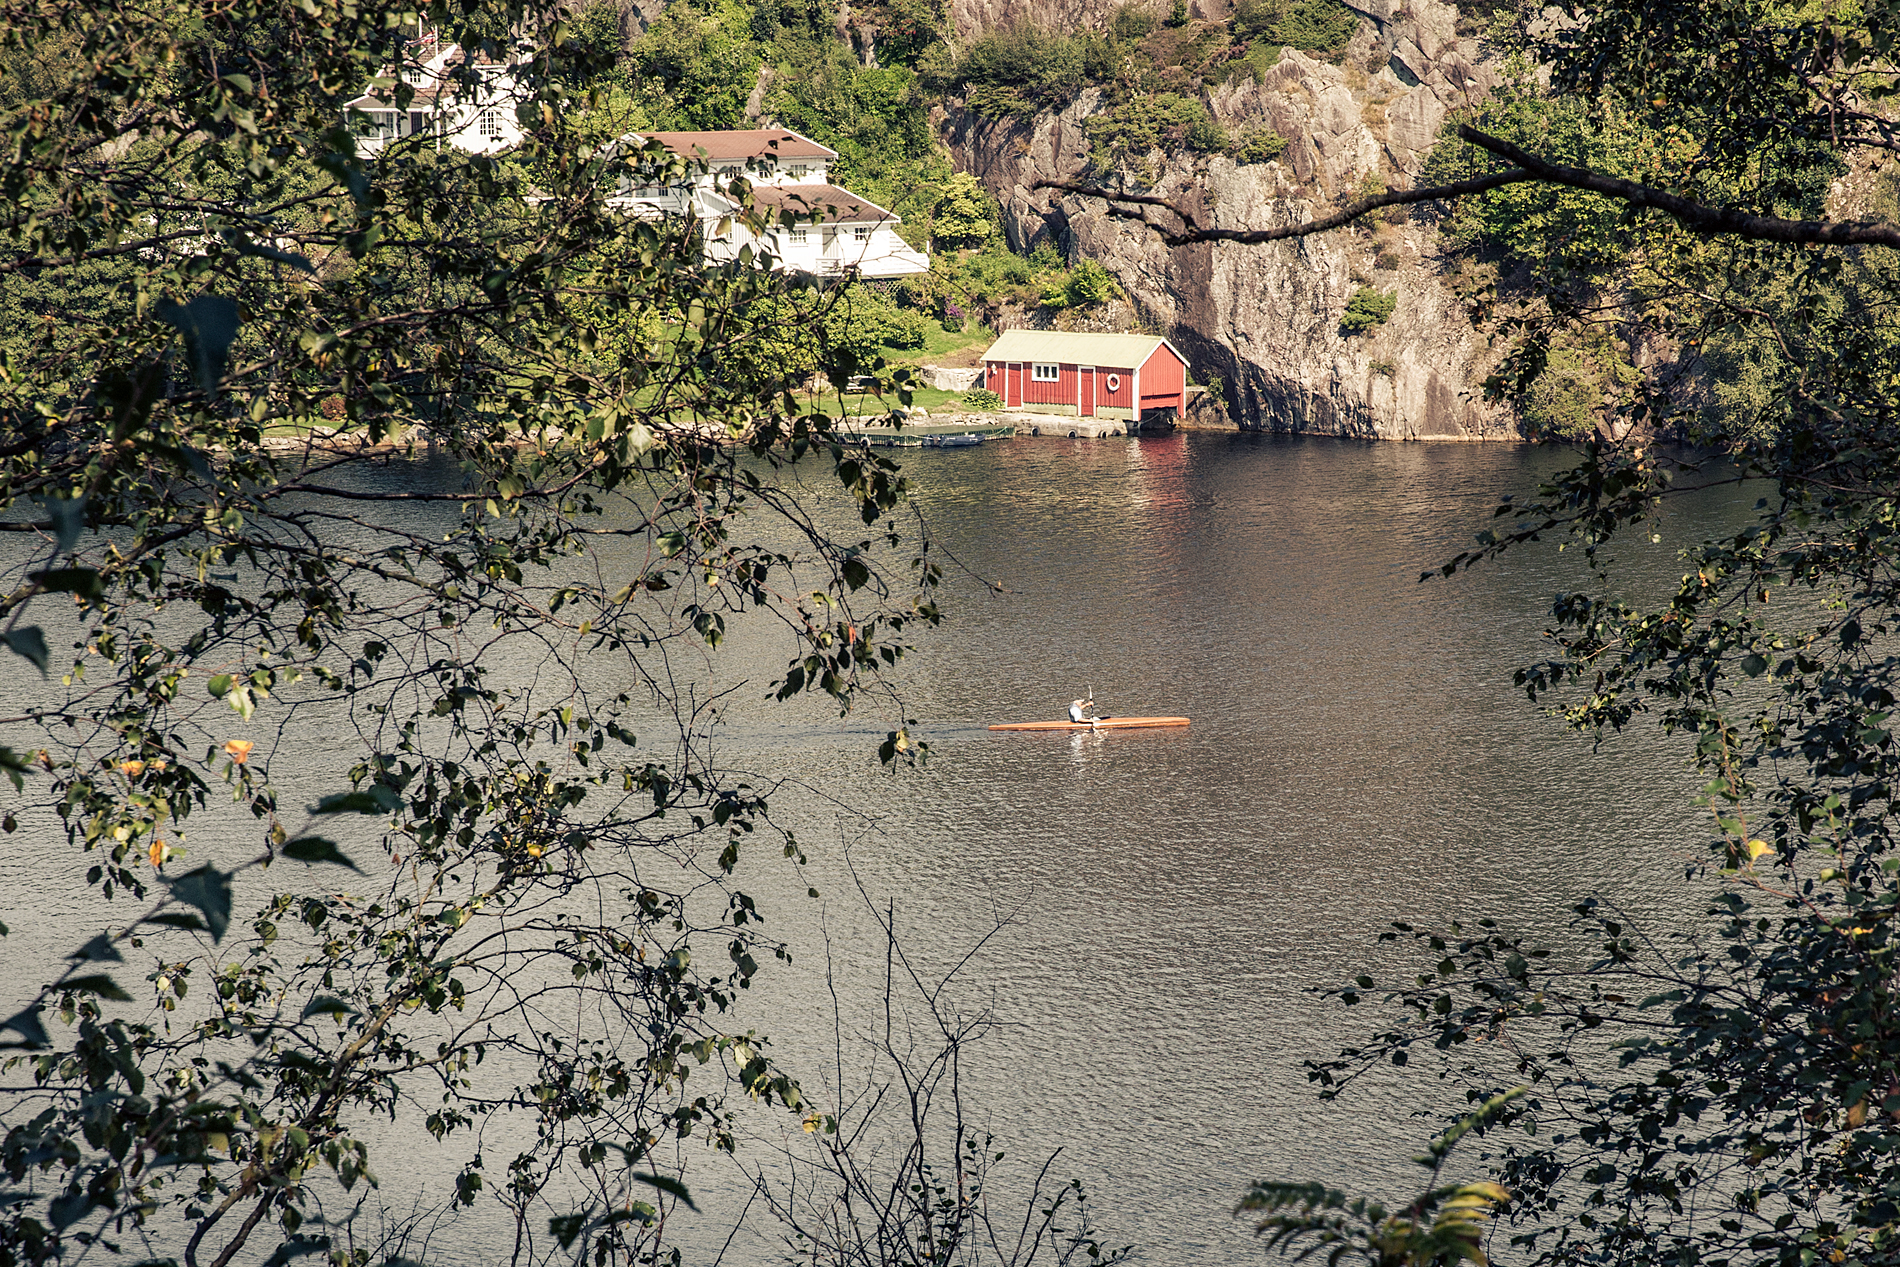 Day 239 – Tuesday August 27 – Kjeøya, Egersund